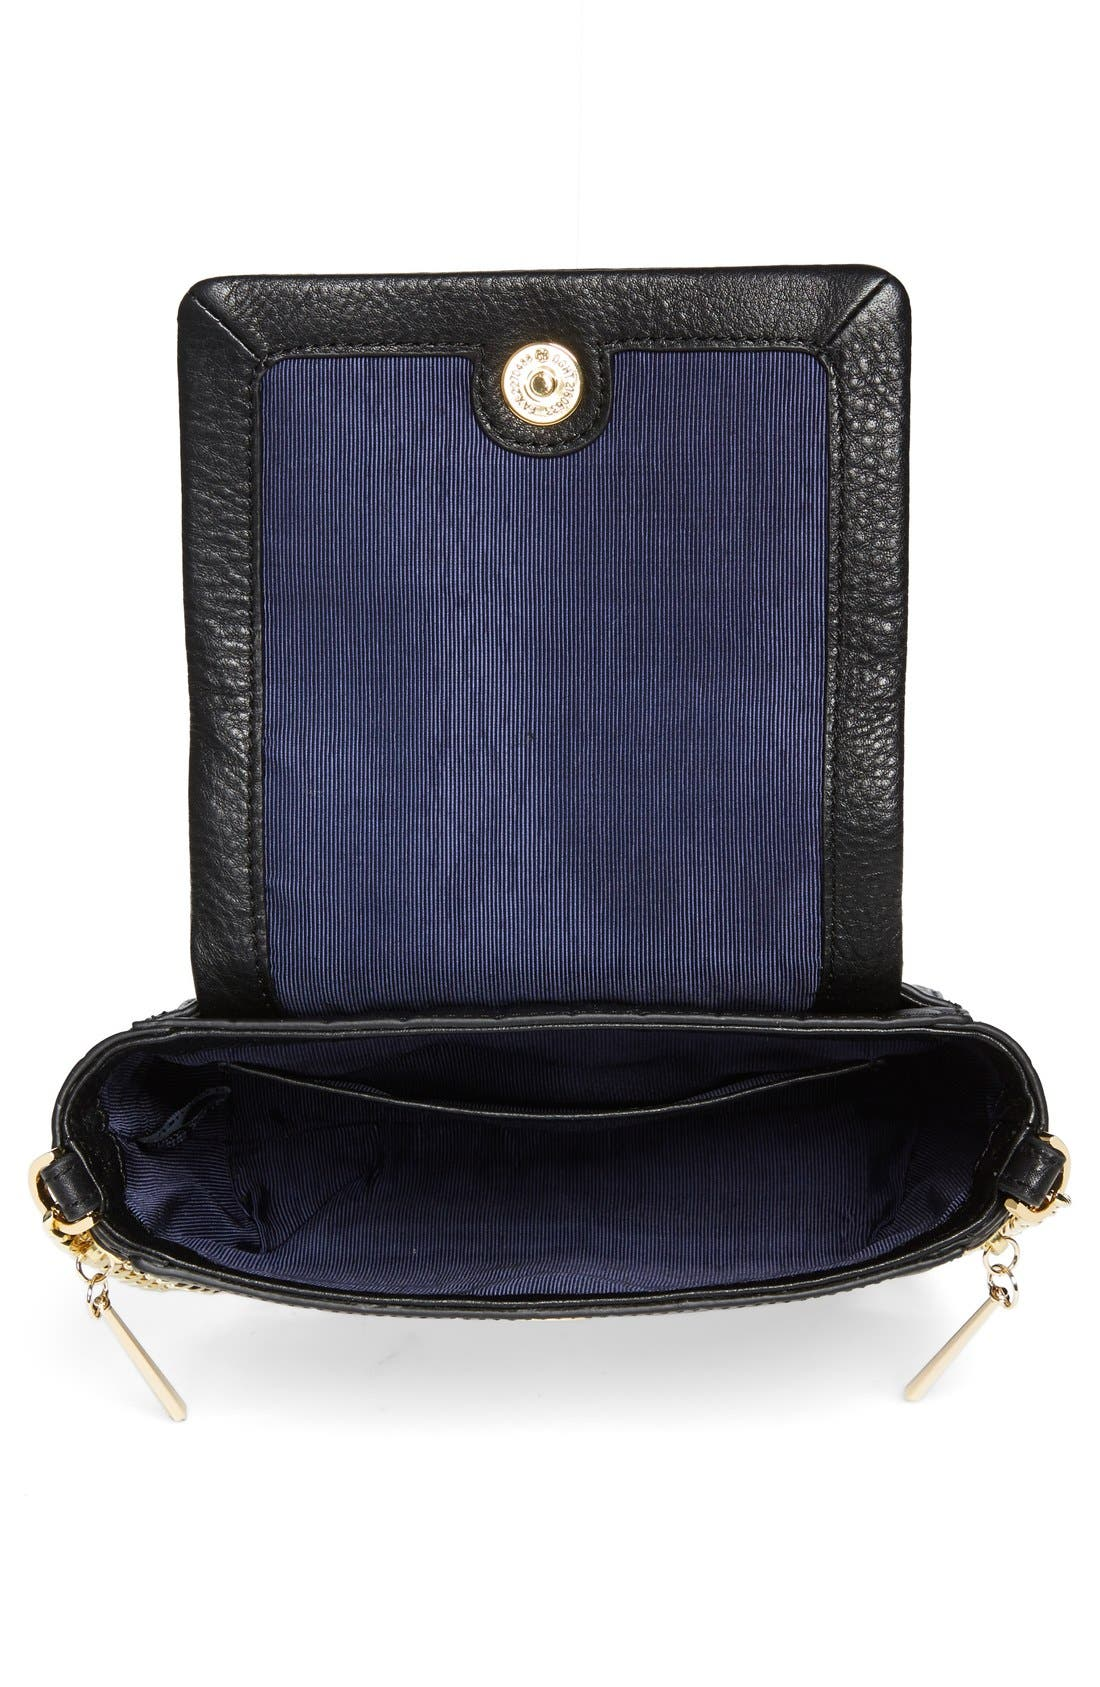 Alternate Image 3  - Pour la Victoire 'Alsace' Crossbody Bag